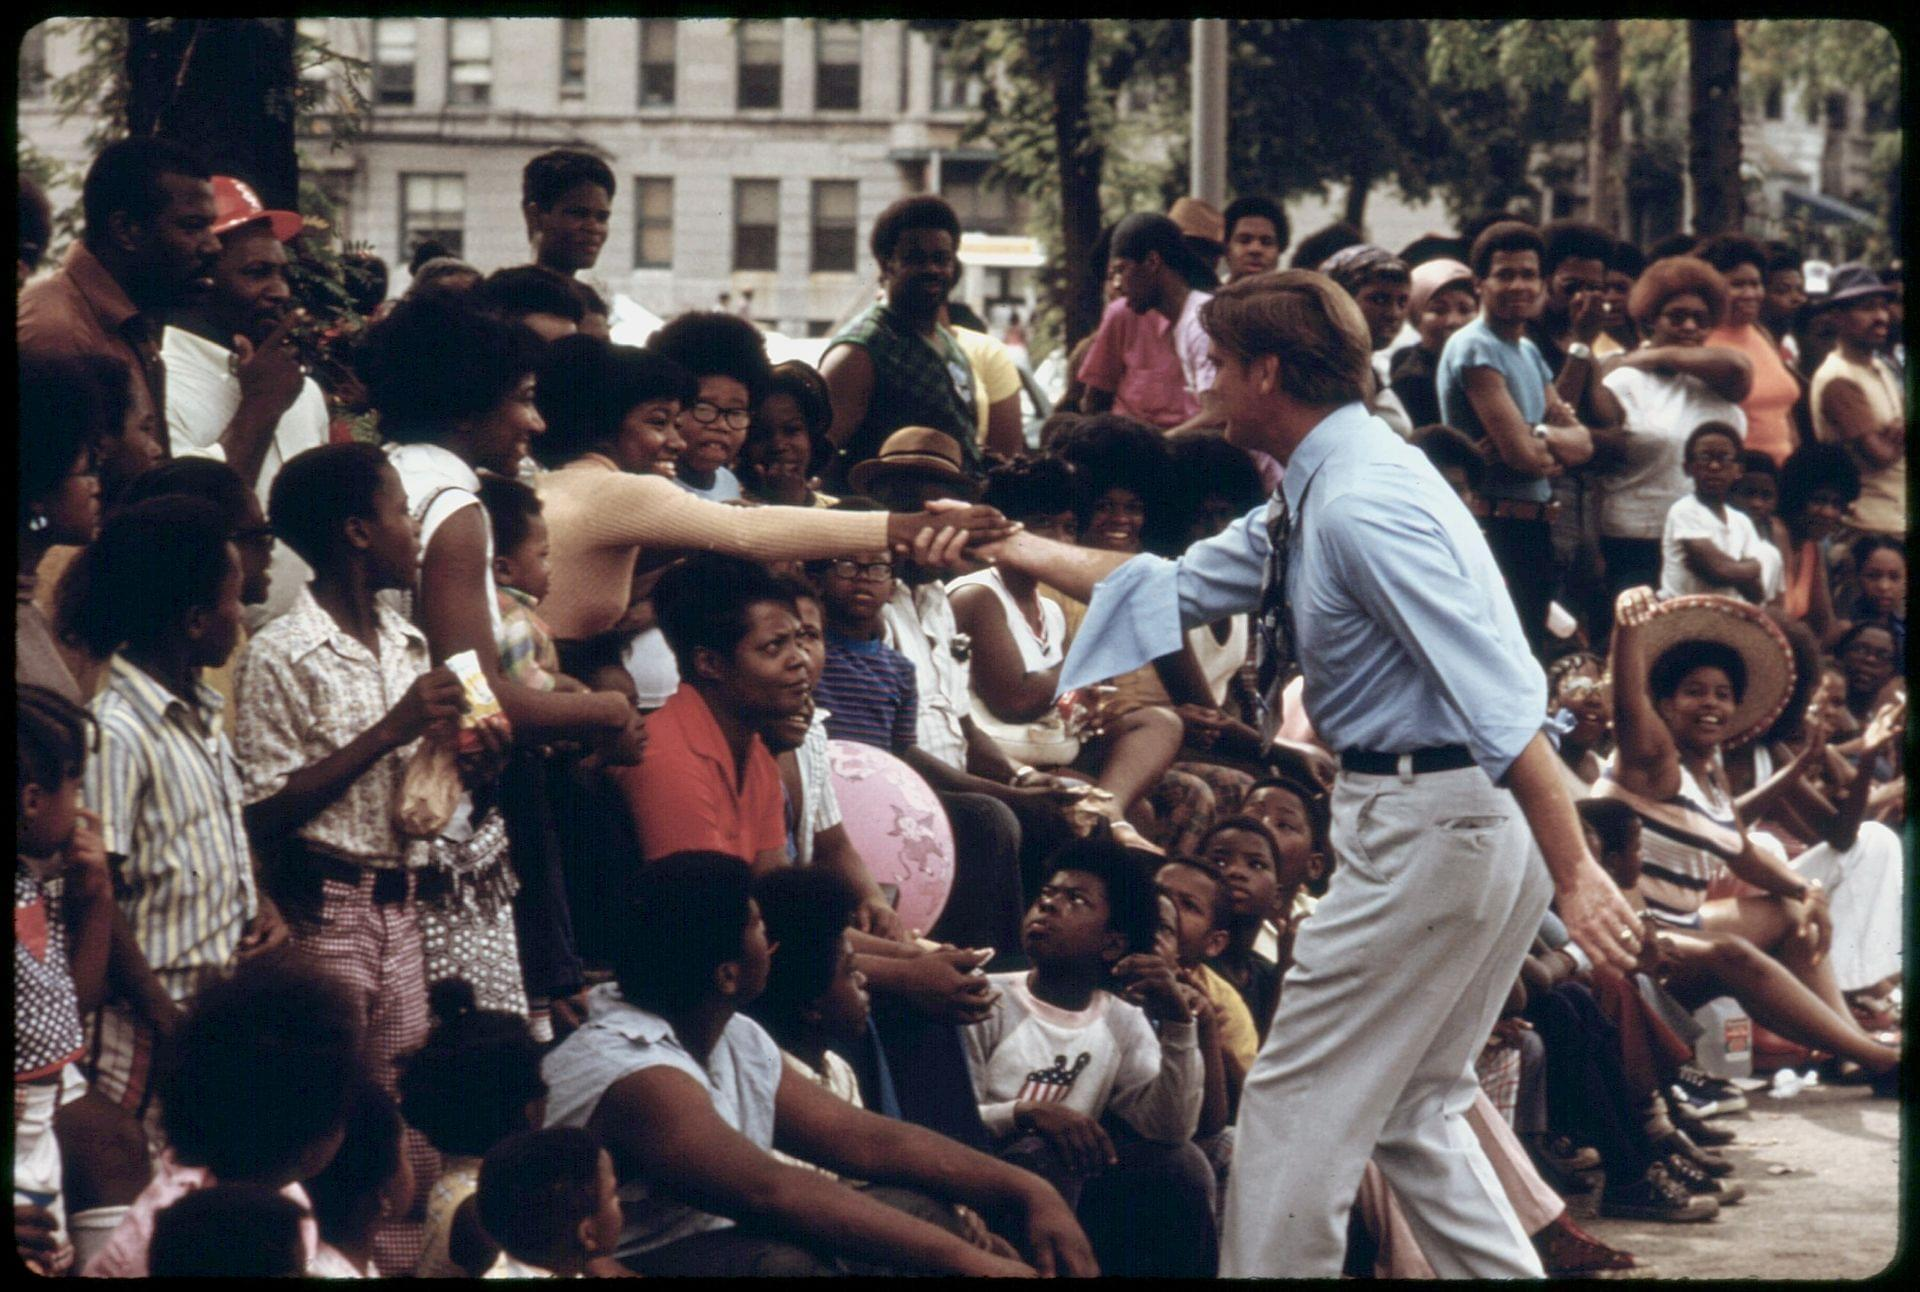 Dan Walker greets Chicago constituents during the Bud Billiken Day Parade, 1973. Photo by John H. White